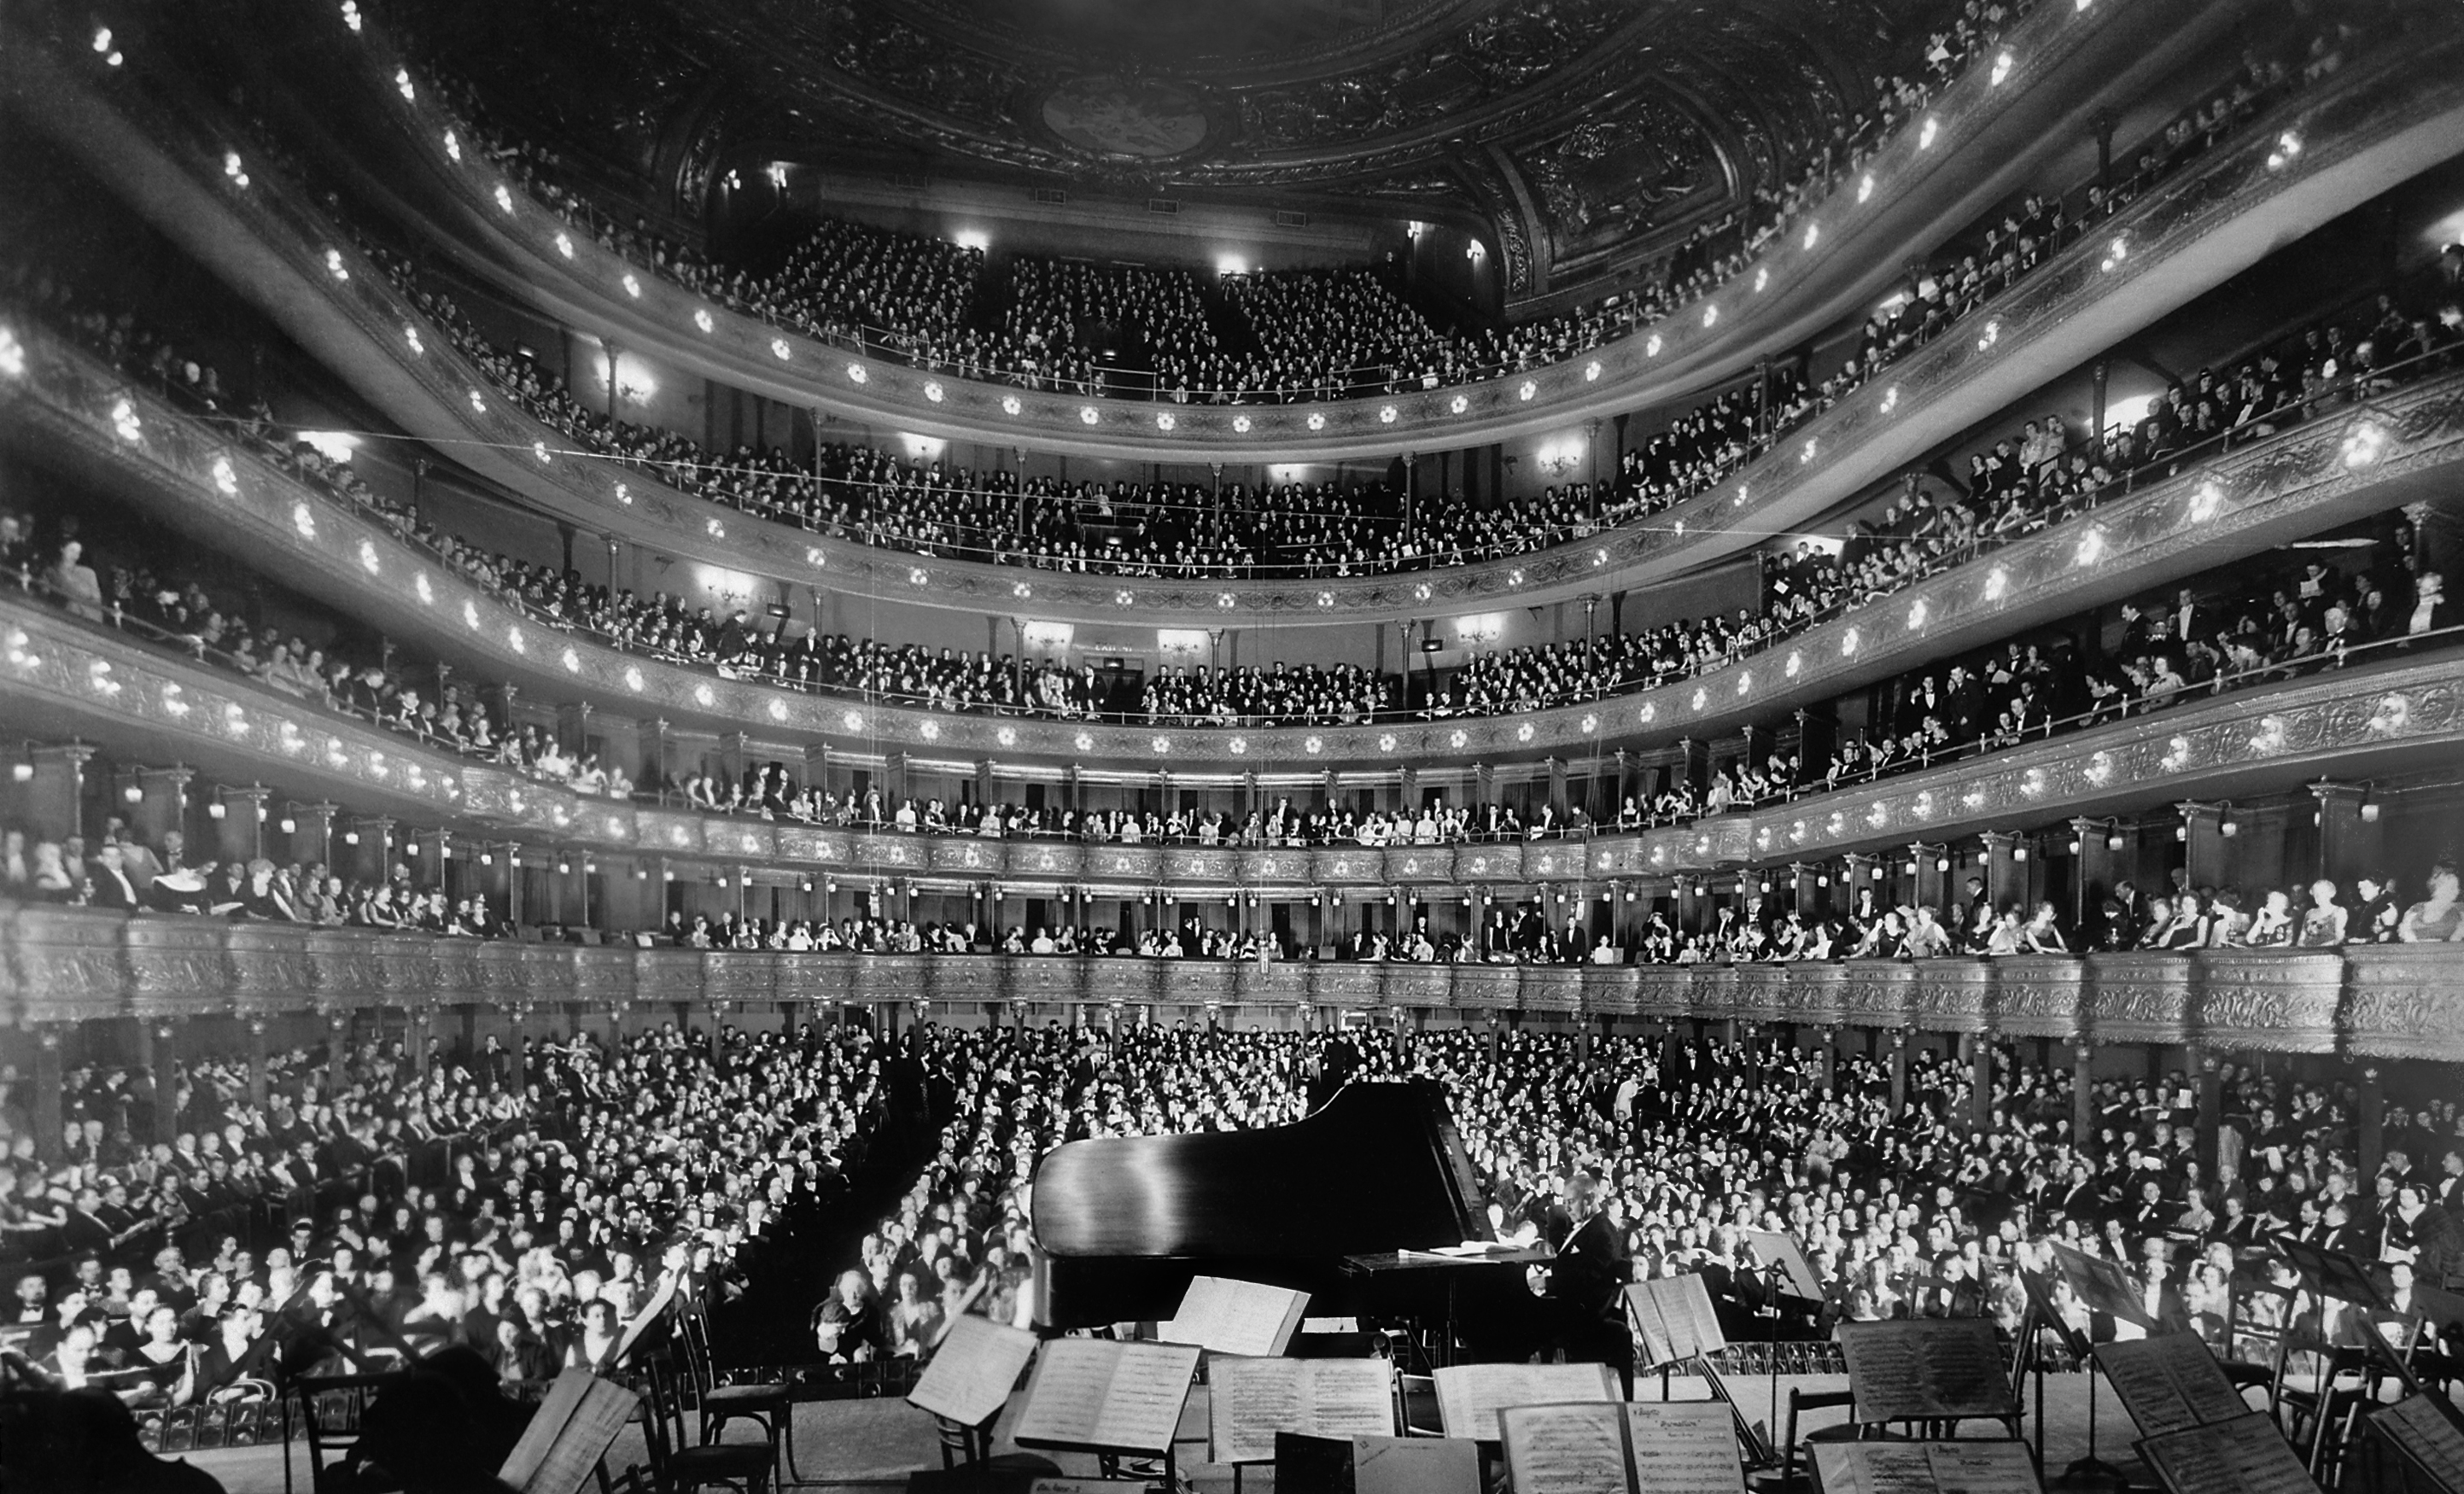 Inside The Old New York City Metropolitan Opera House 1937 2886x1750 Rebrn Com